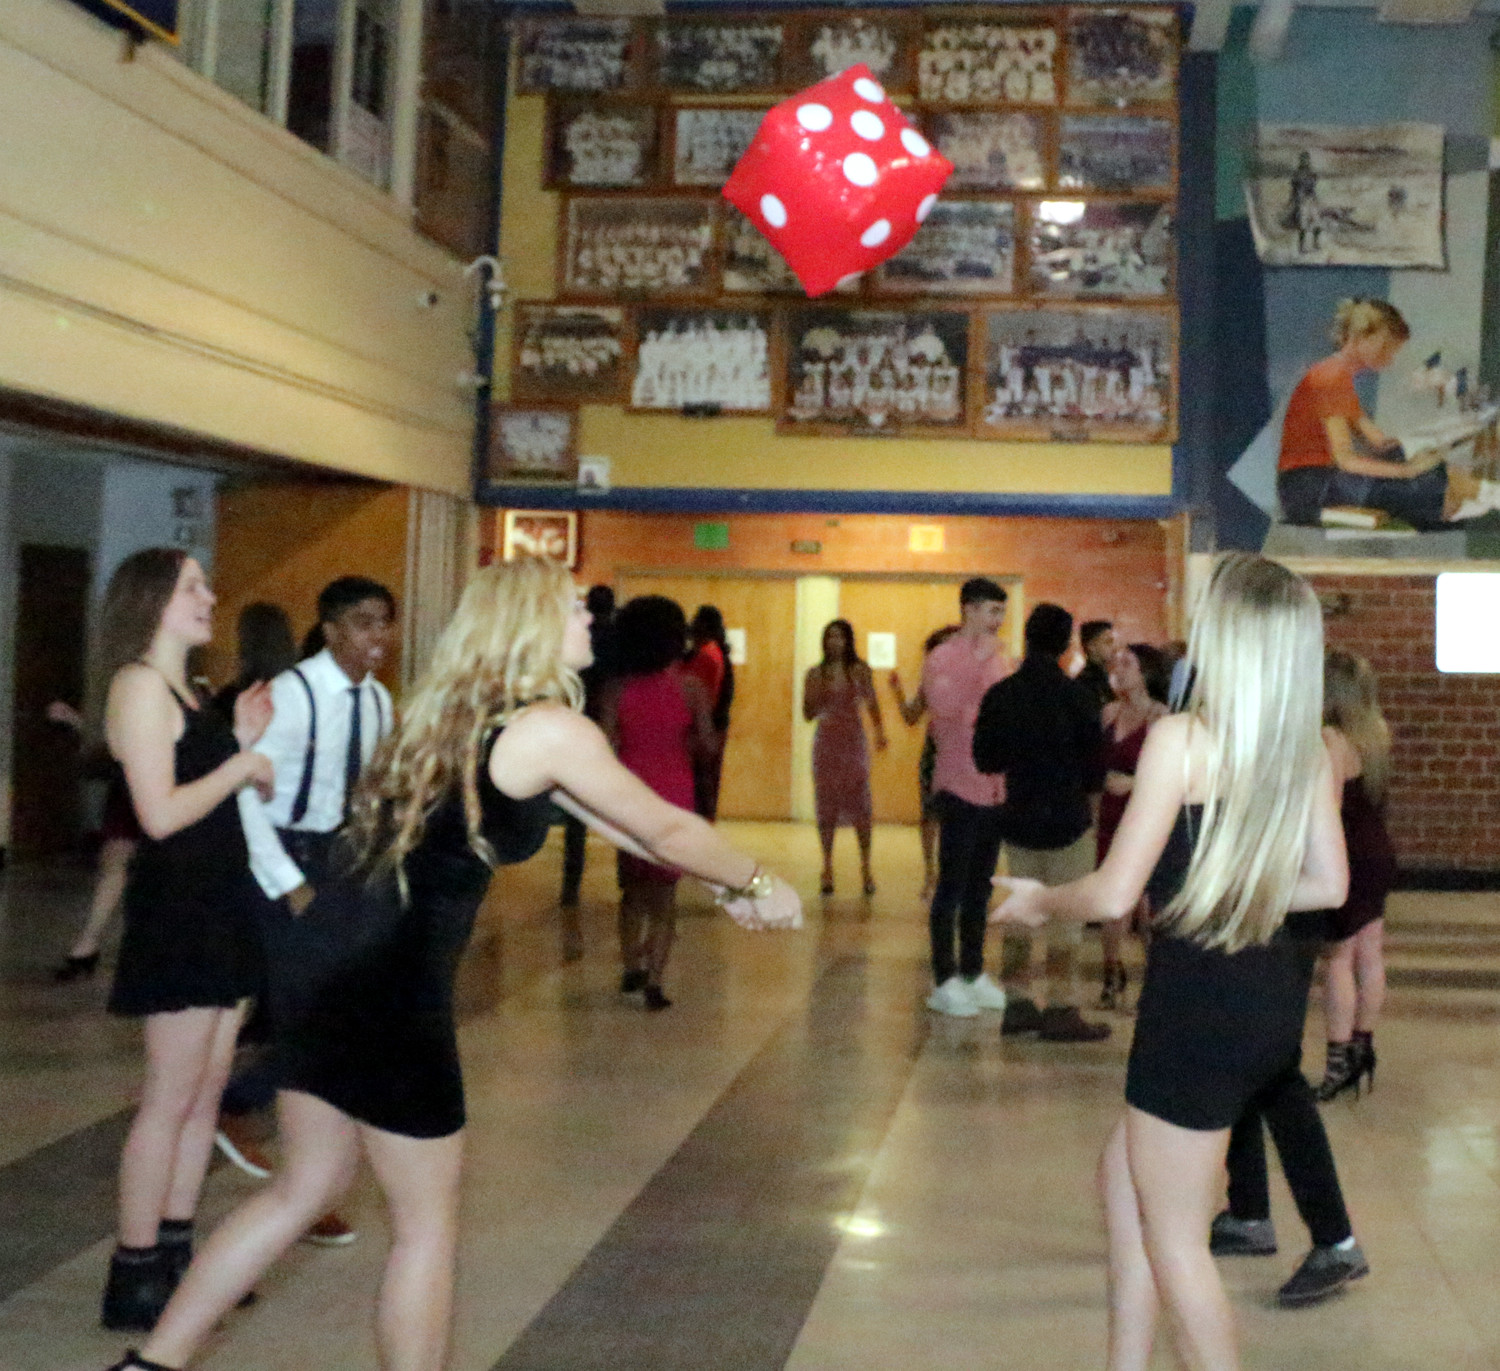 Baldwin High School's Senior Banquet was a great place for the Seniors to dance and laugh with each other.